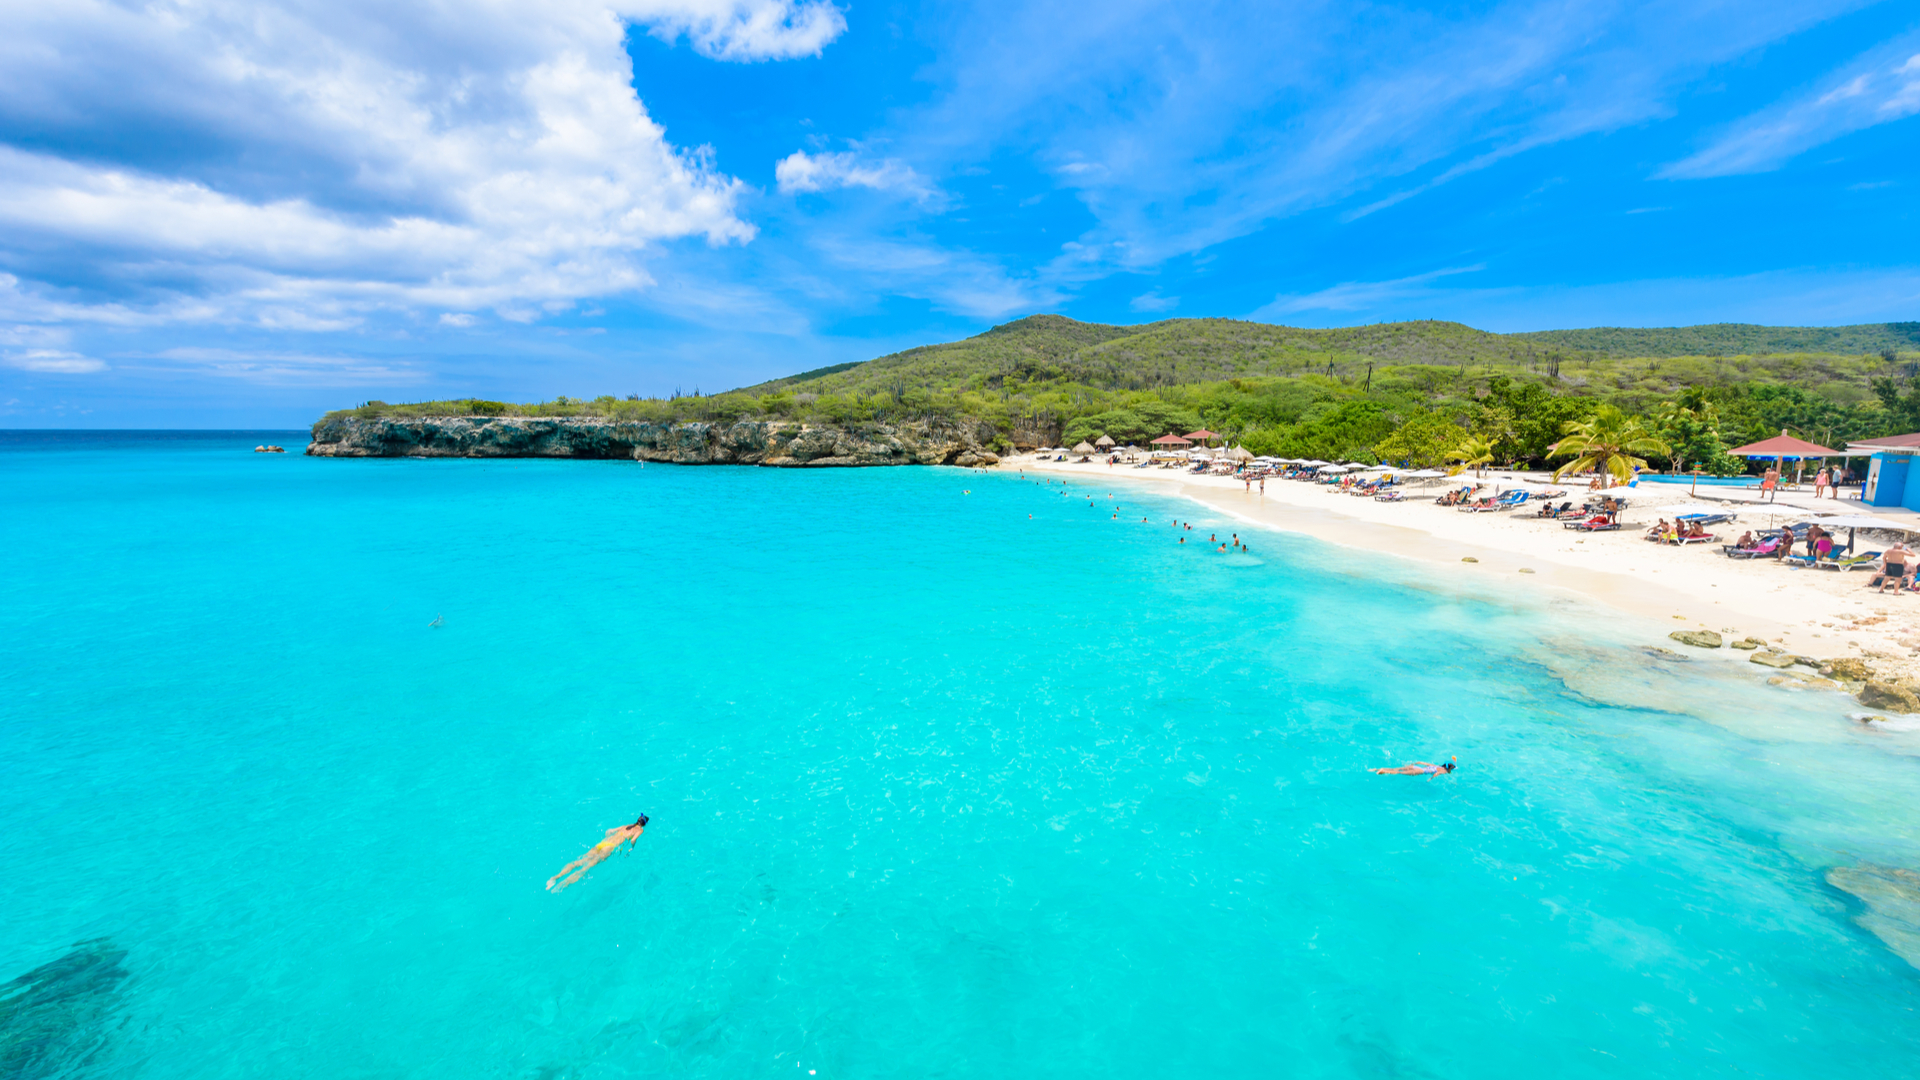 Package Tours From Chicago To Curacao Christmas 2021 9 Reasons To Visit Curacao The Hidden Gem Of The Abc Islands Smartertravel